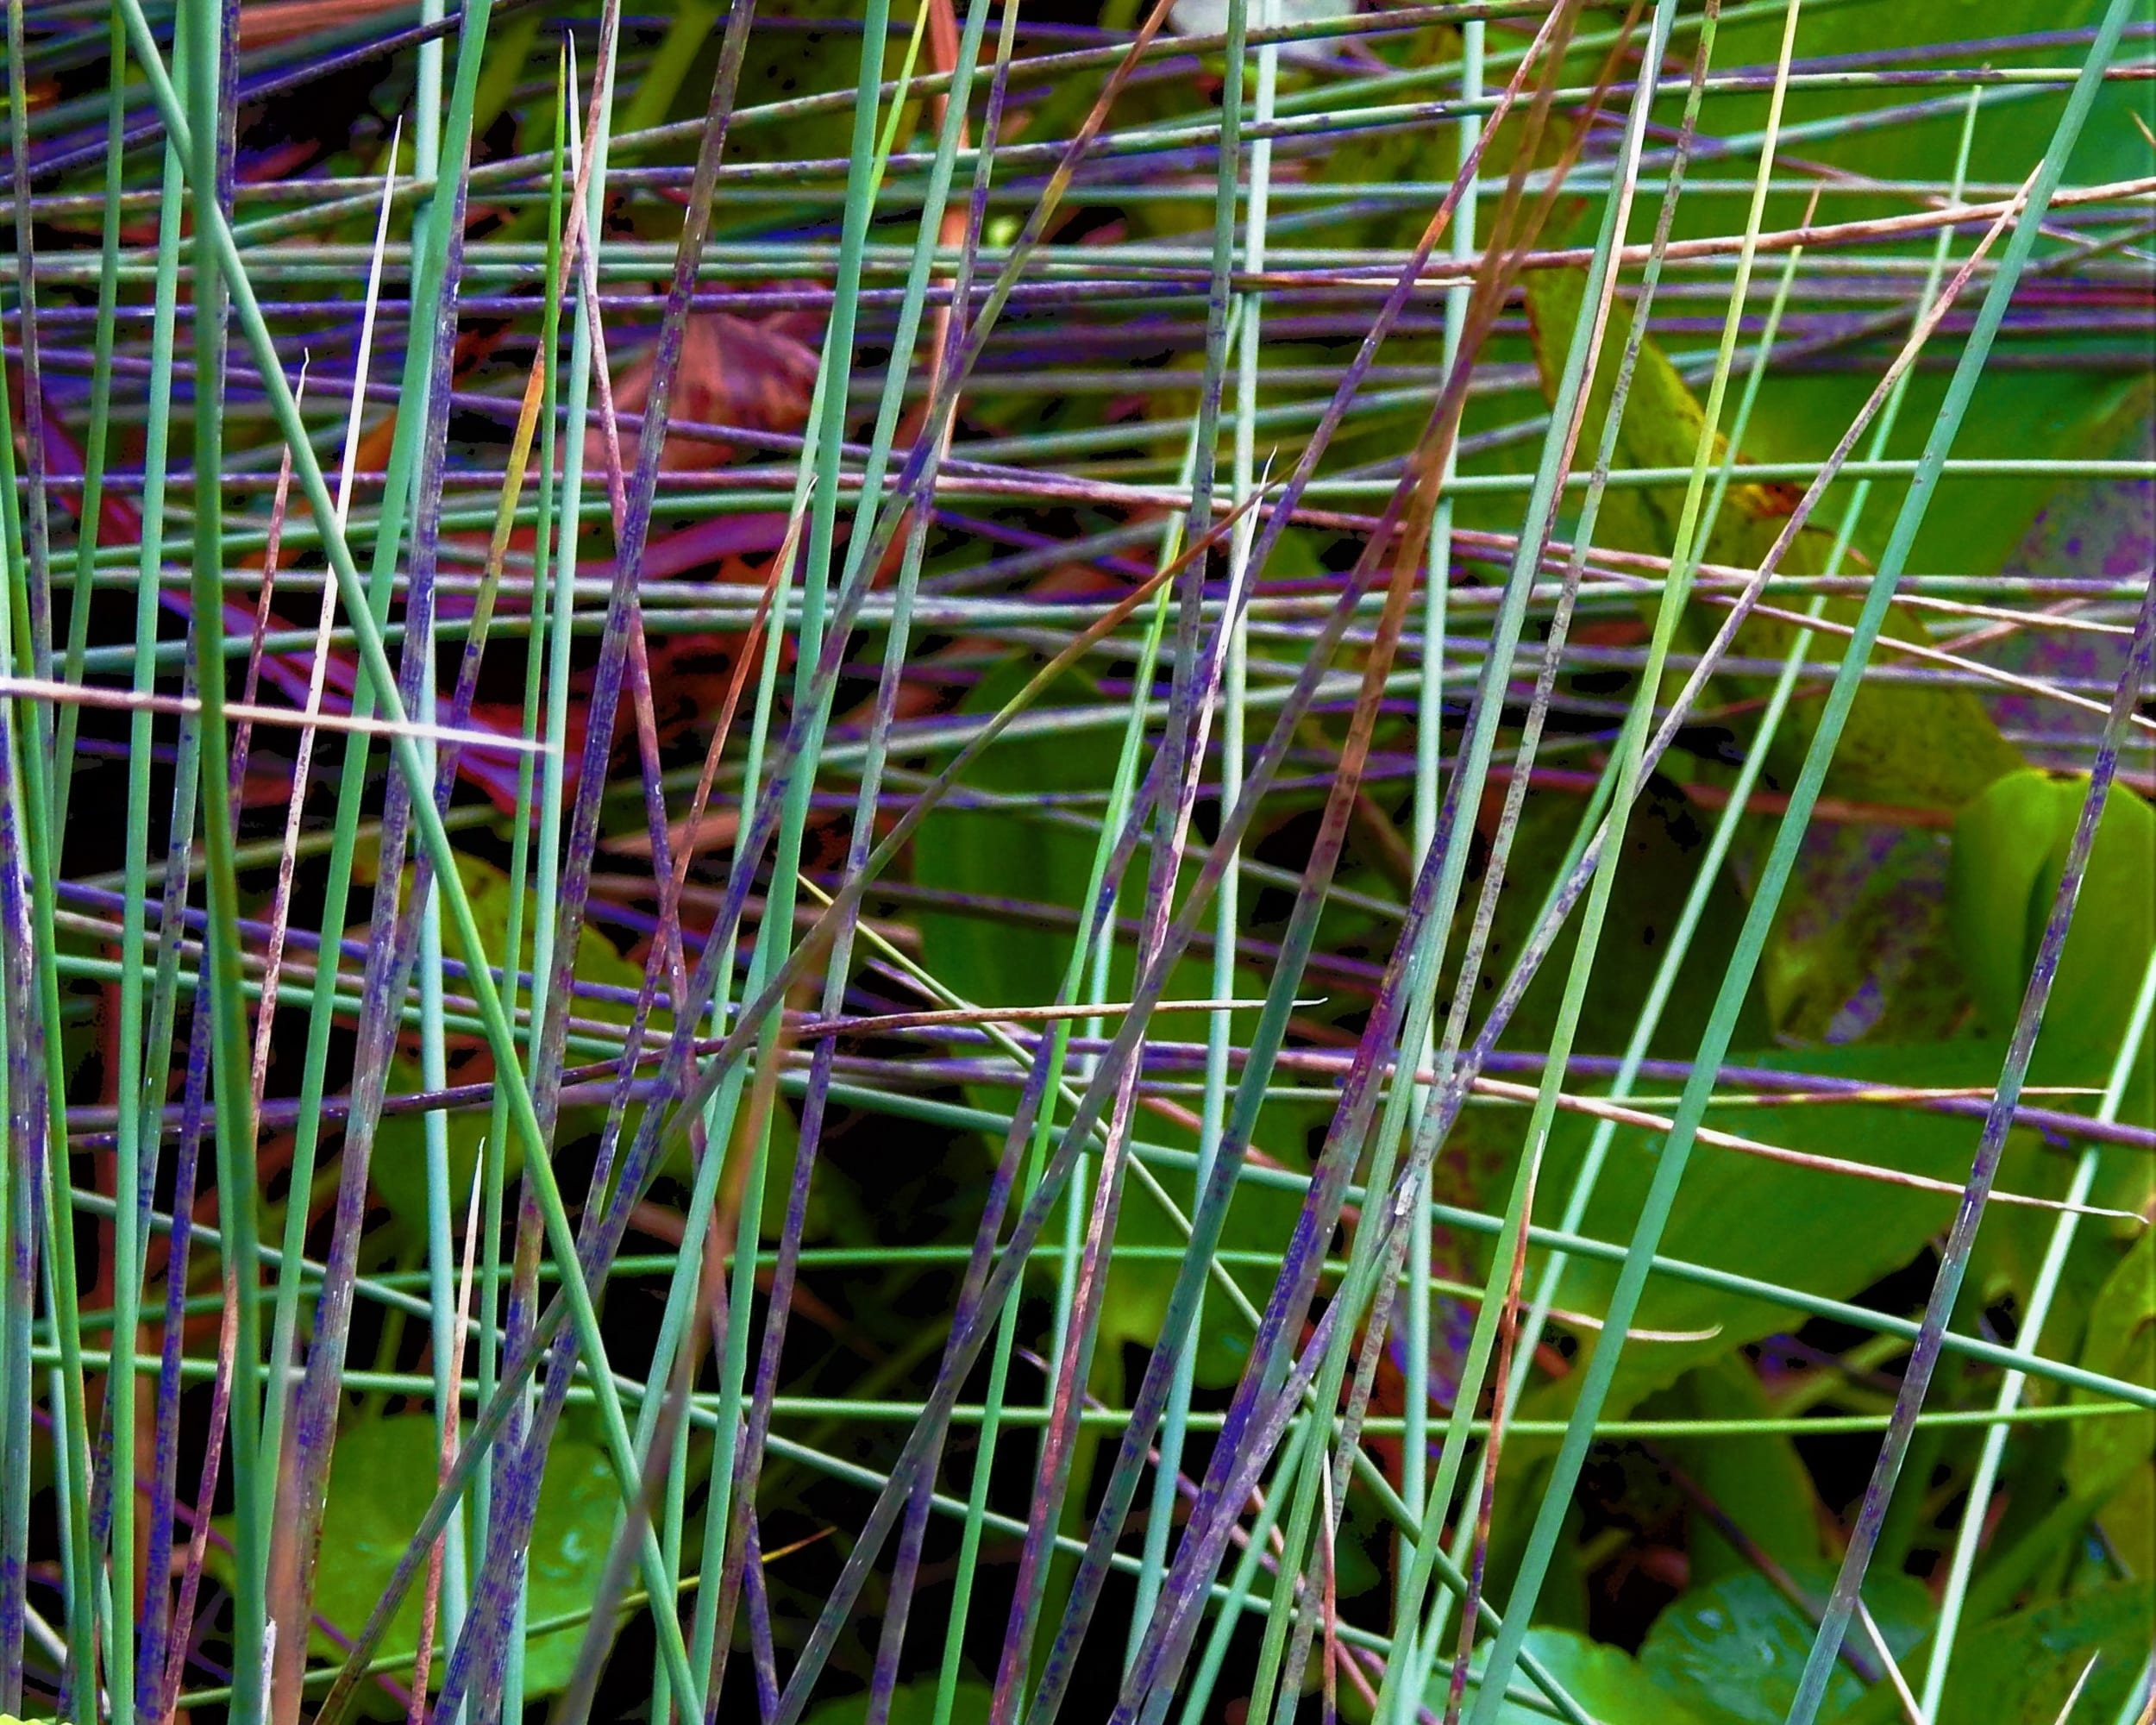 cynthialchappell-technicolor-grass-digital-dslr-2019